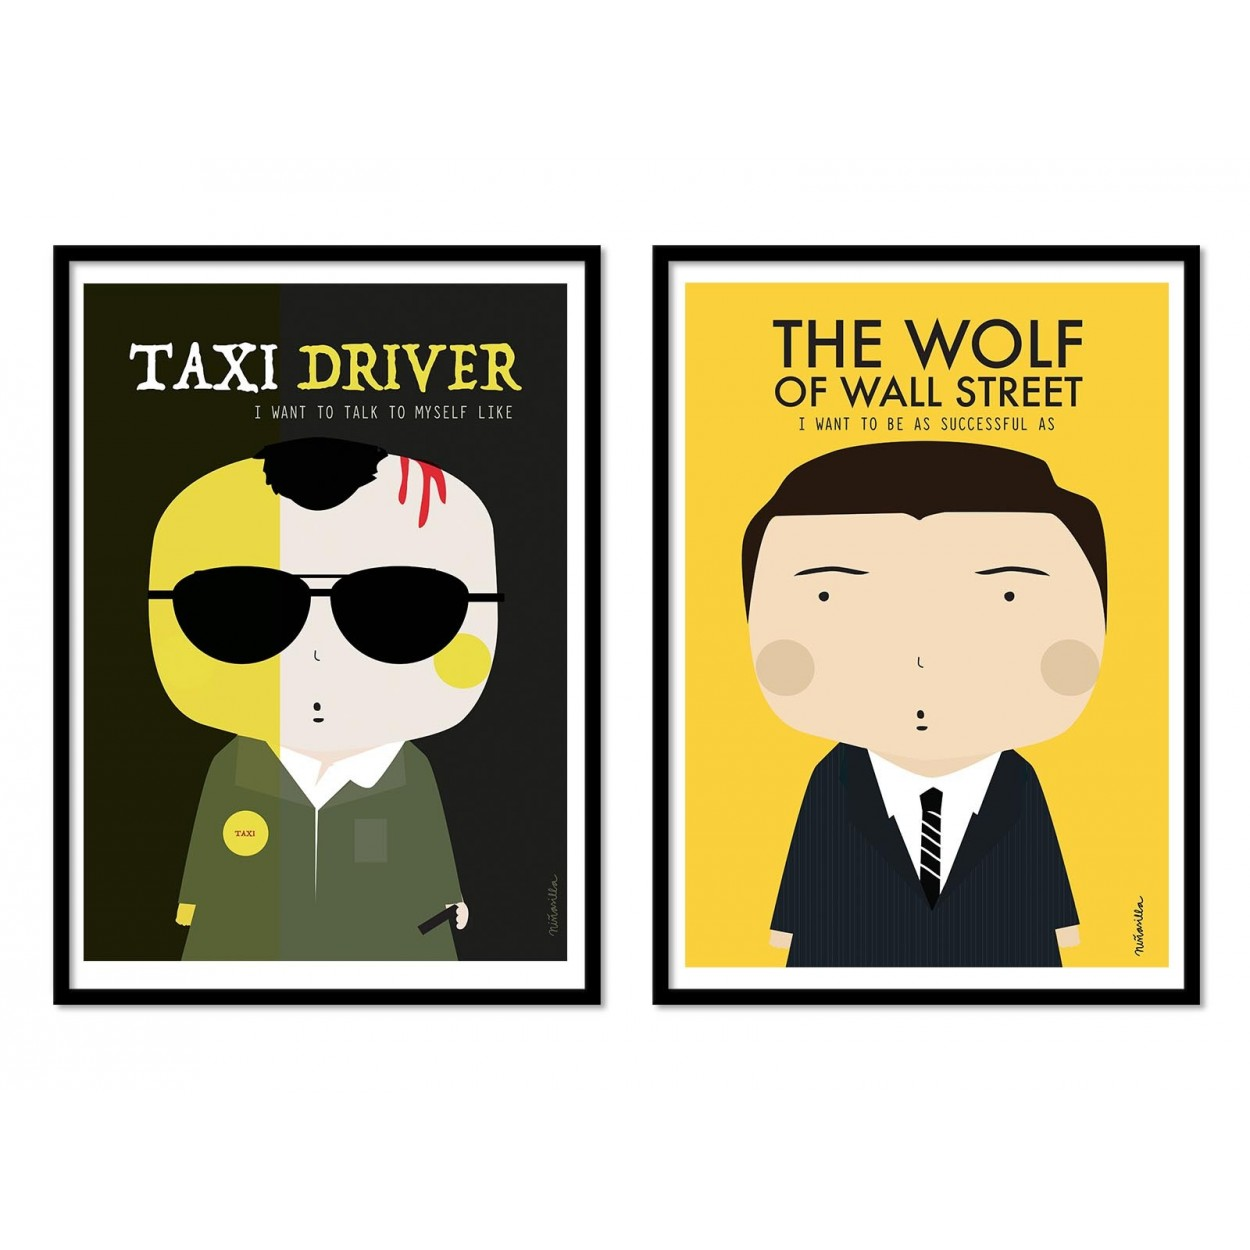 Illustrations Art Poster, fan-art prints decoration of Scorcese movies